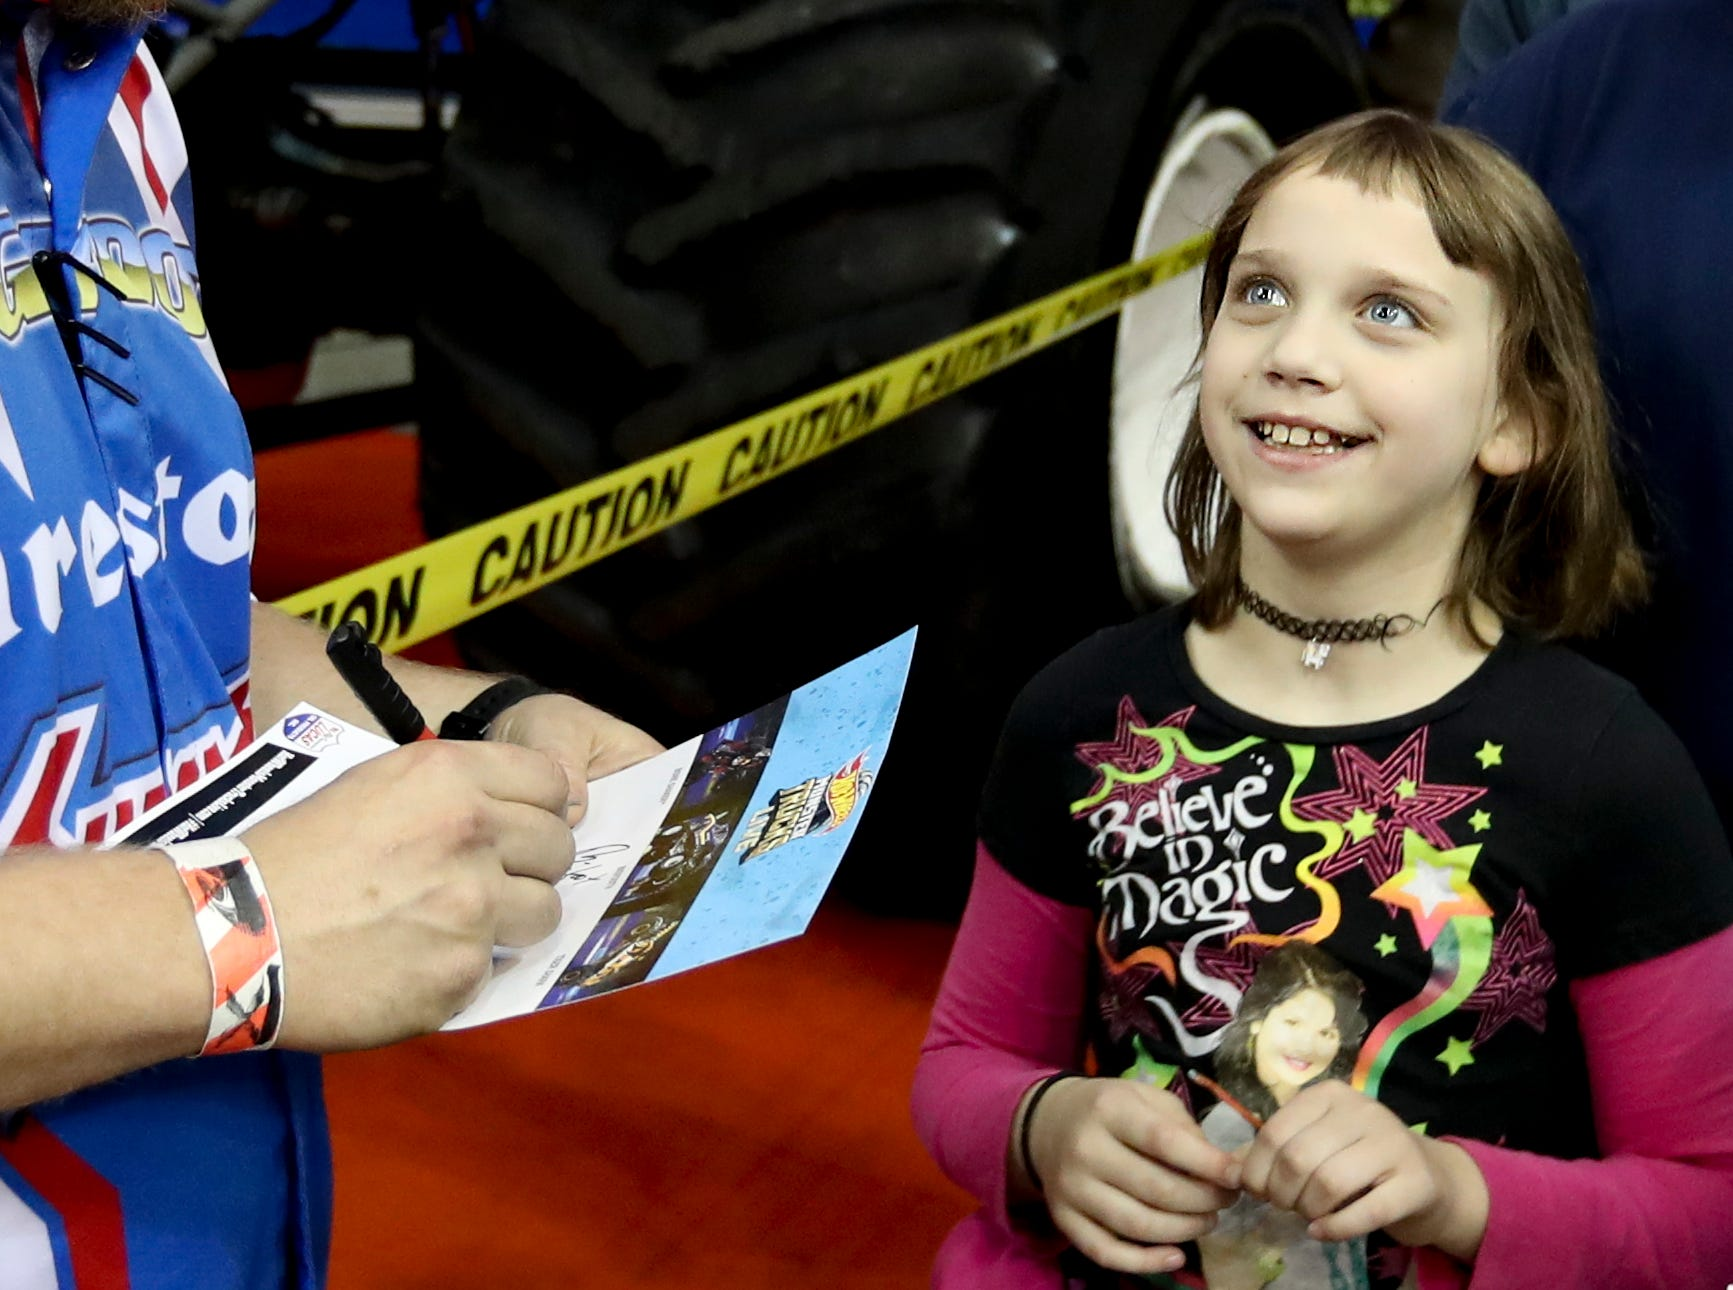 Darron Schnell, driver of Big Foot, signs autographs during the Crash Zone Party before the Hot Wheels Monster Trucks show at the KFC Yum Center on March 16.